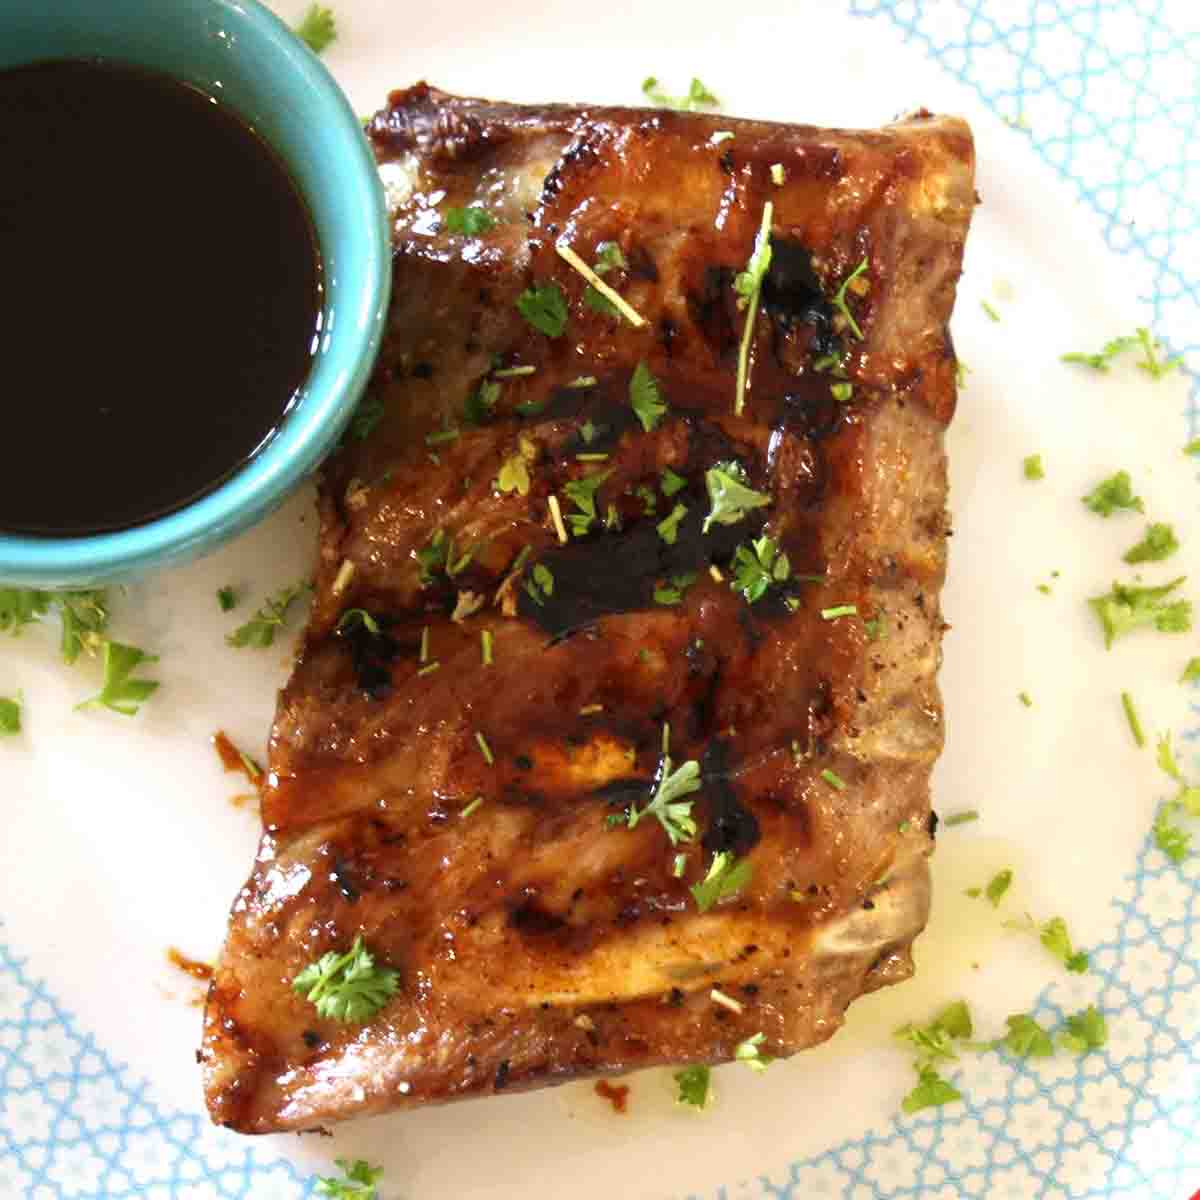 sticky bourbon ribs on a plate with sauce in a pot.